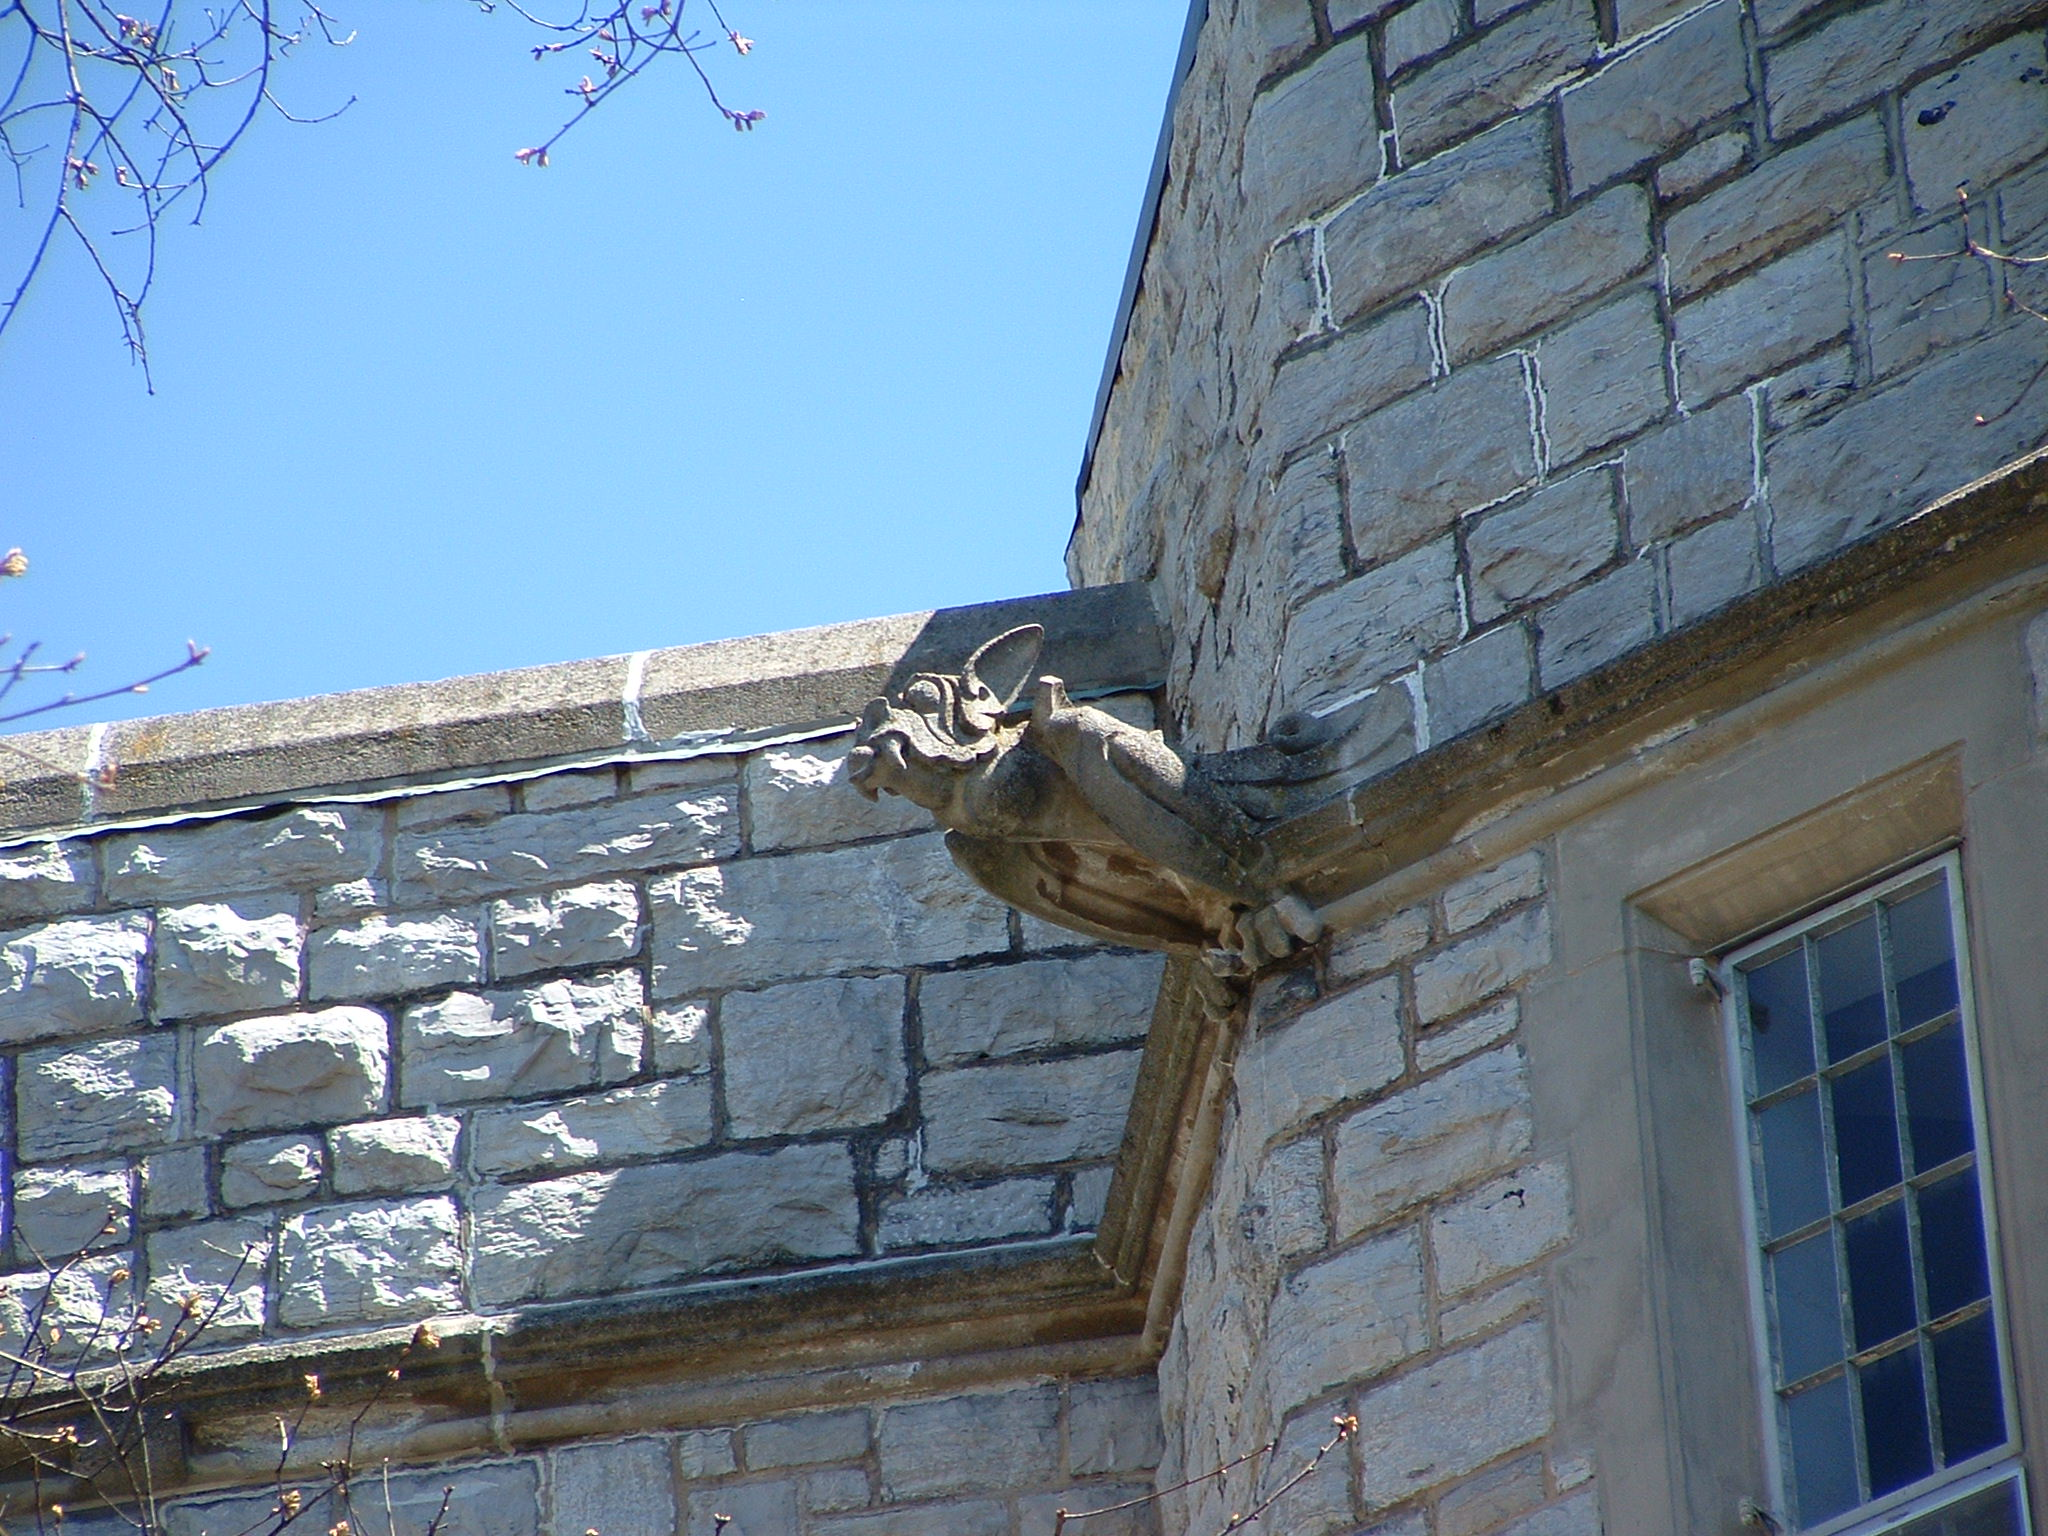 """Gargoyle"" on Virginia Tech's Smyth Hall, viewed from the Ag Quad; image by Buridan - Own work, Public Domain, https://commons.wikimedia.org/w/index.php?curid=102796"